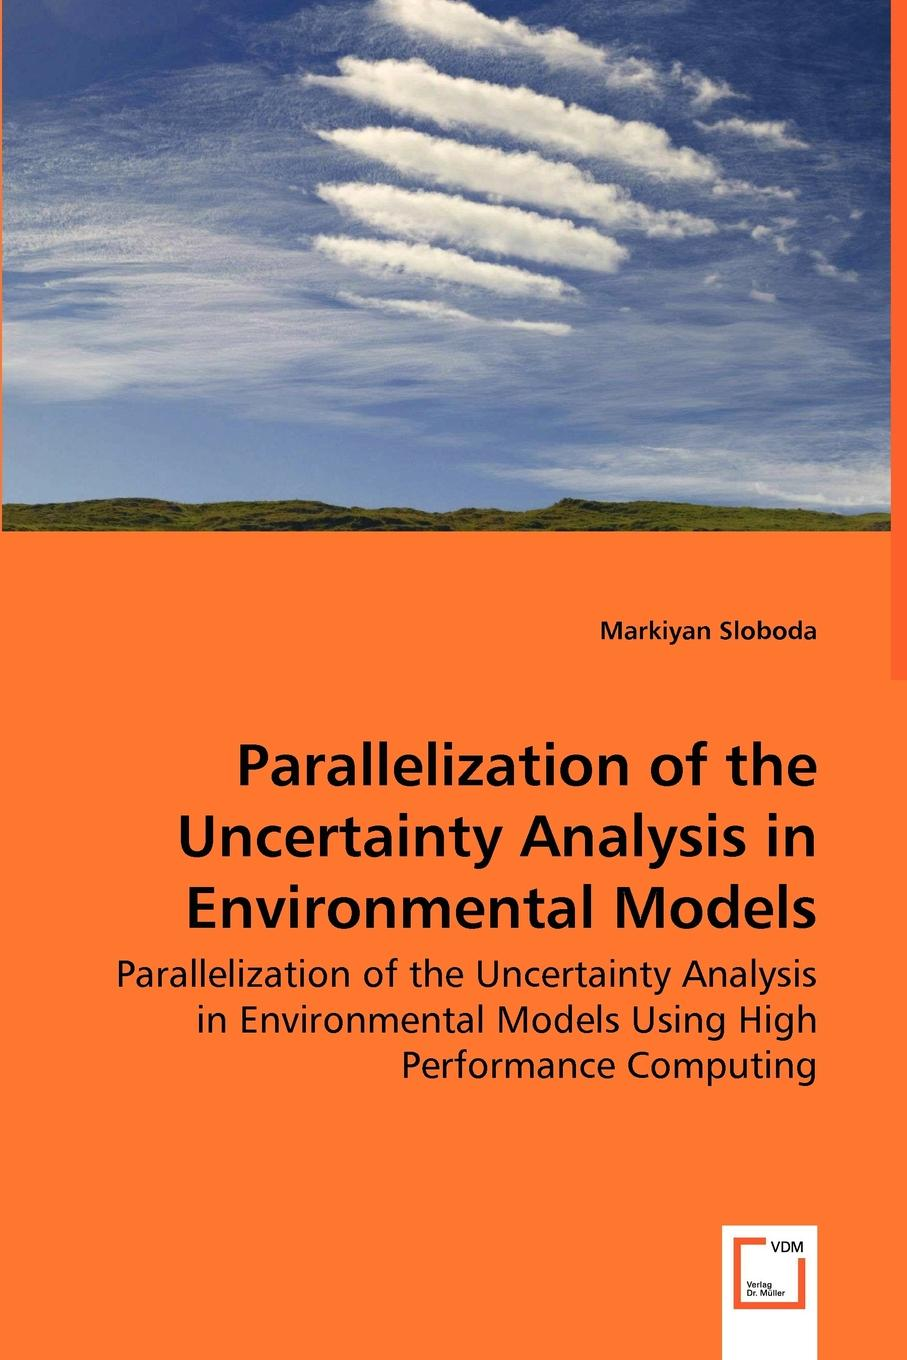 Markiyan Sloboda Parallelization of the Uncertainty Analysis in Environmental Models - Parallelization of the Uncertainty Analysis in Environmental Models Using High Performance Computing